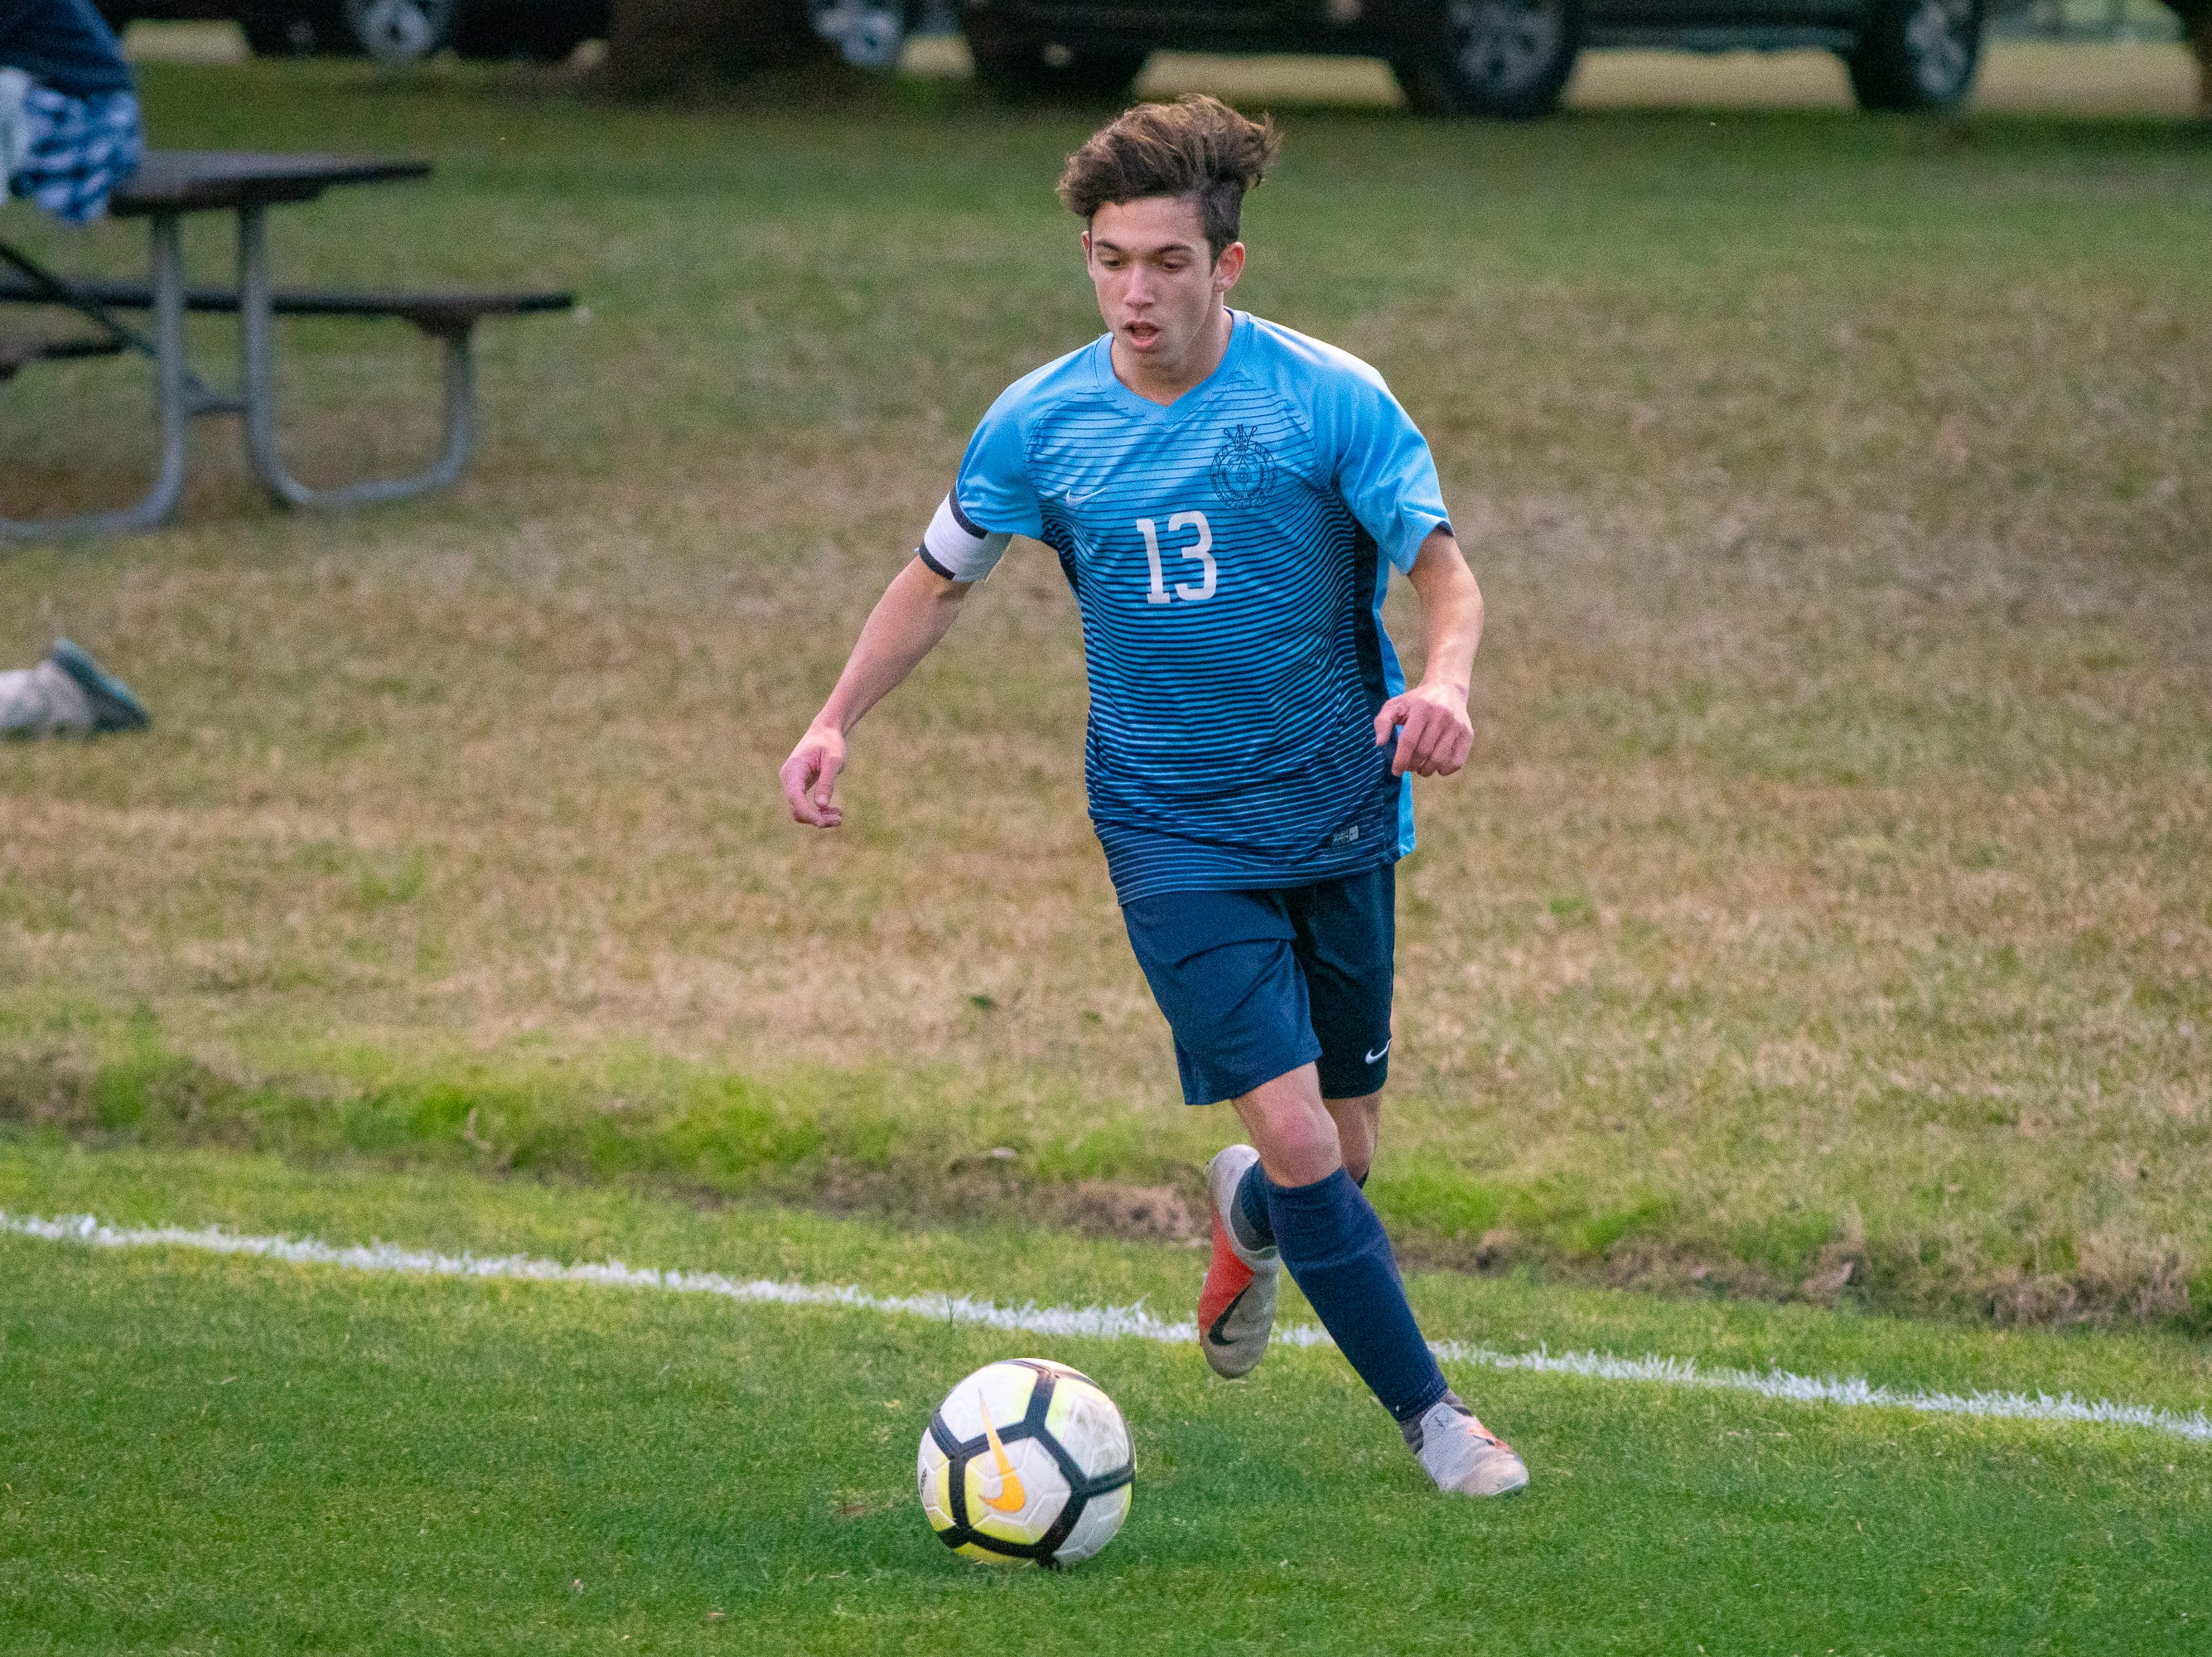 ESA's Nathan Mouton moves the ball down the field as the ESA Falcons take on the Catholic High Panthers on January 28, 2019.